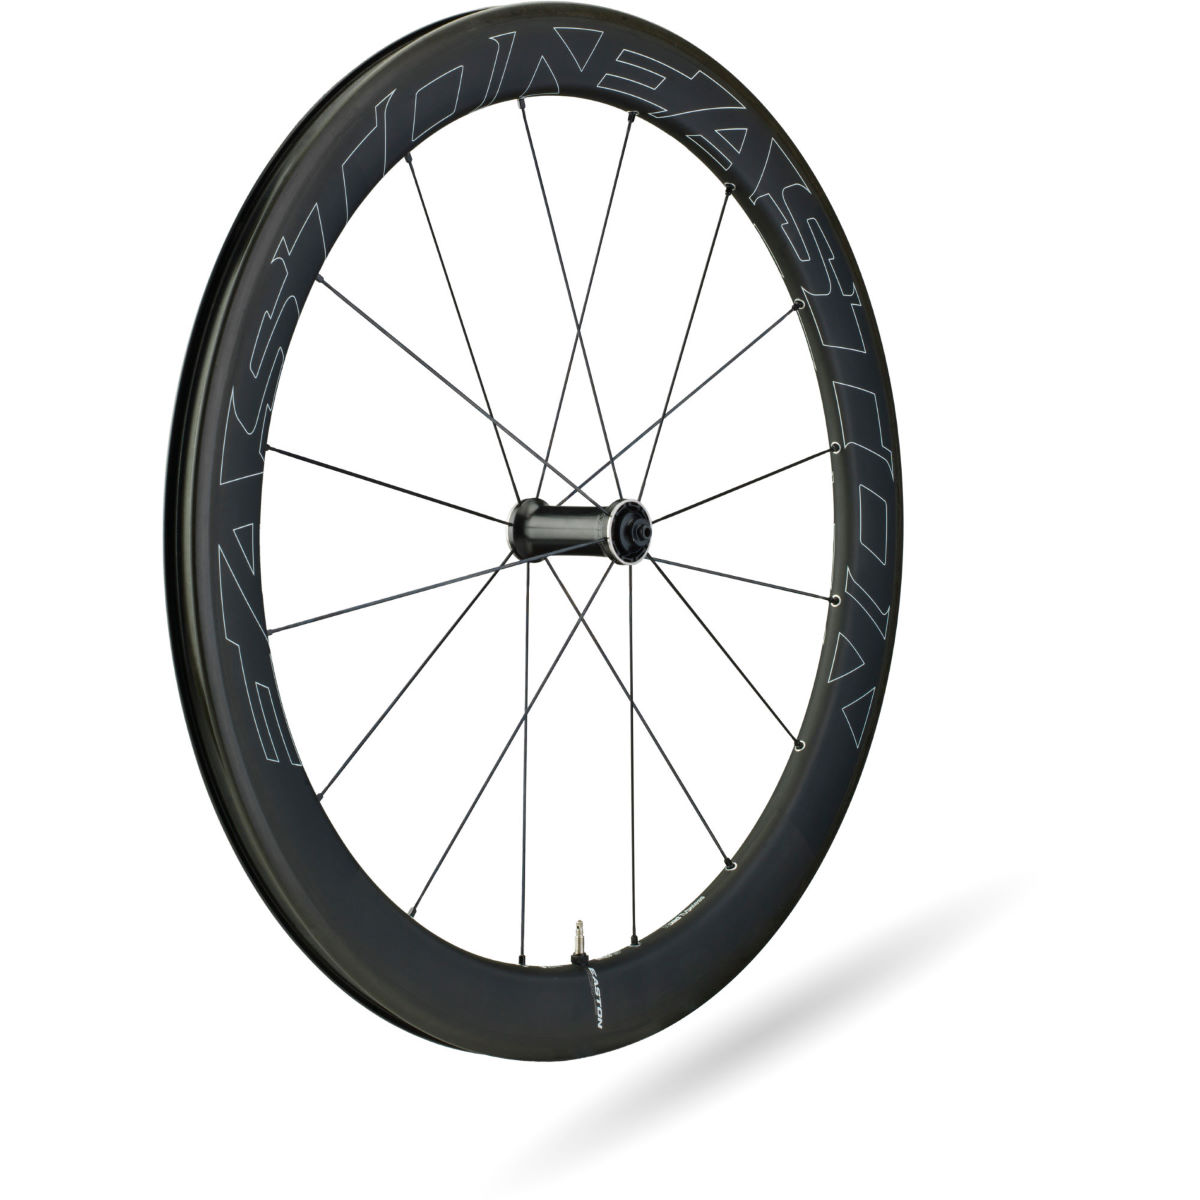 Roue avant Easton EC90 Aero (carbone, route) - 700c Noir Roues performance